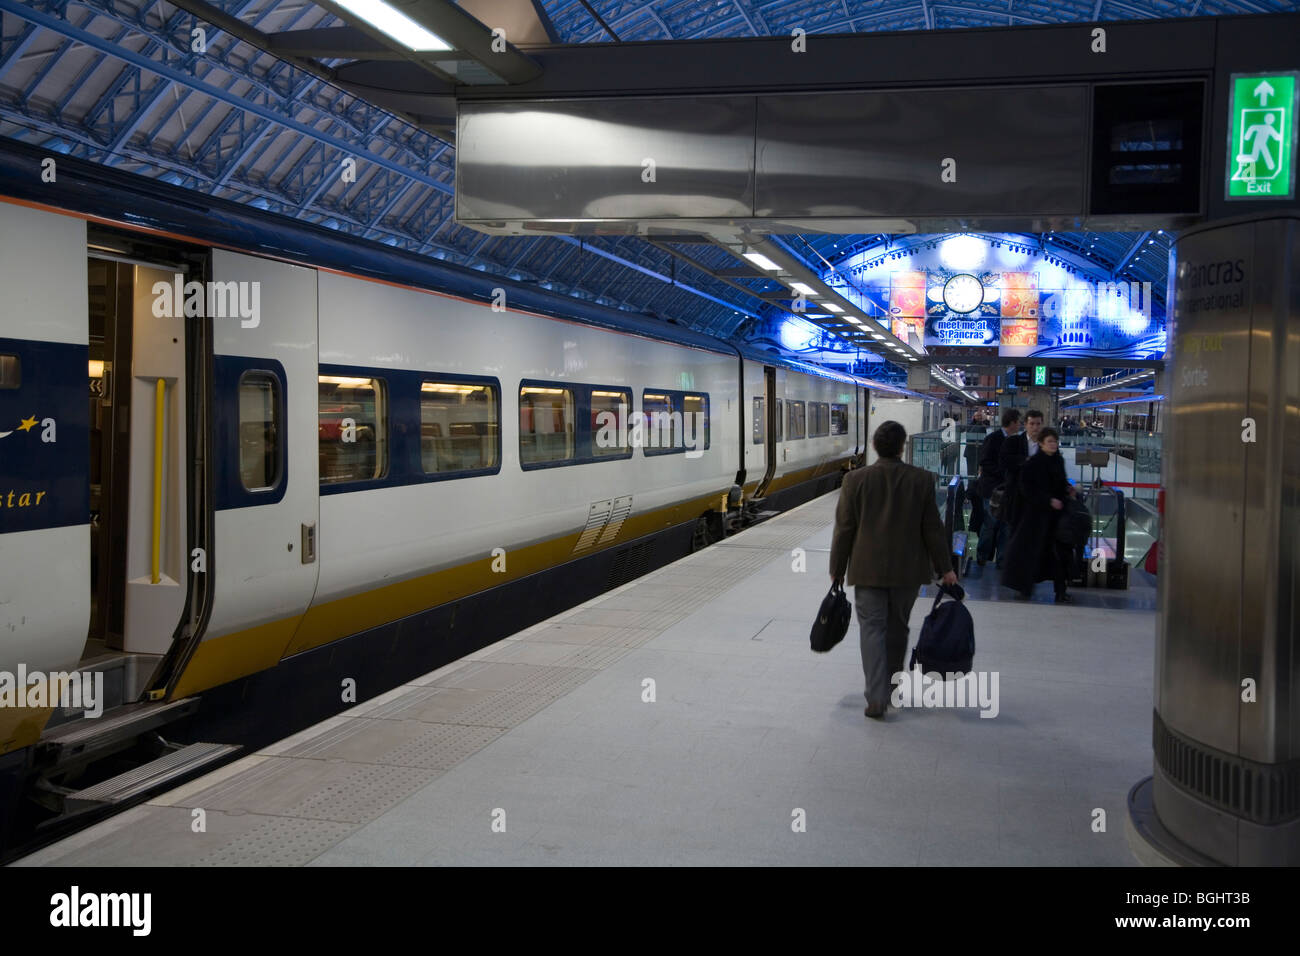 Passengers boarding the Eurostar train at #12;London St Pancras station. - Stock Image